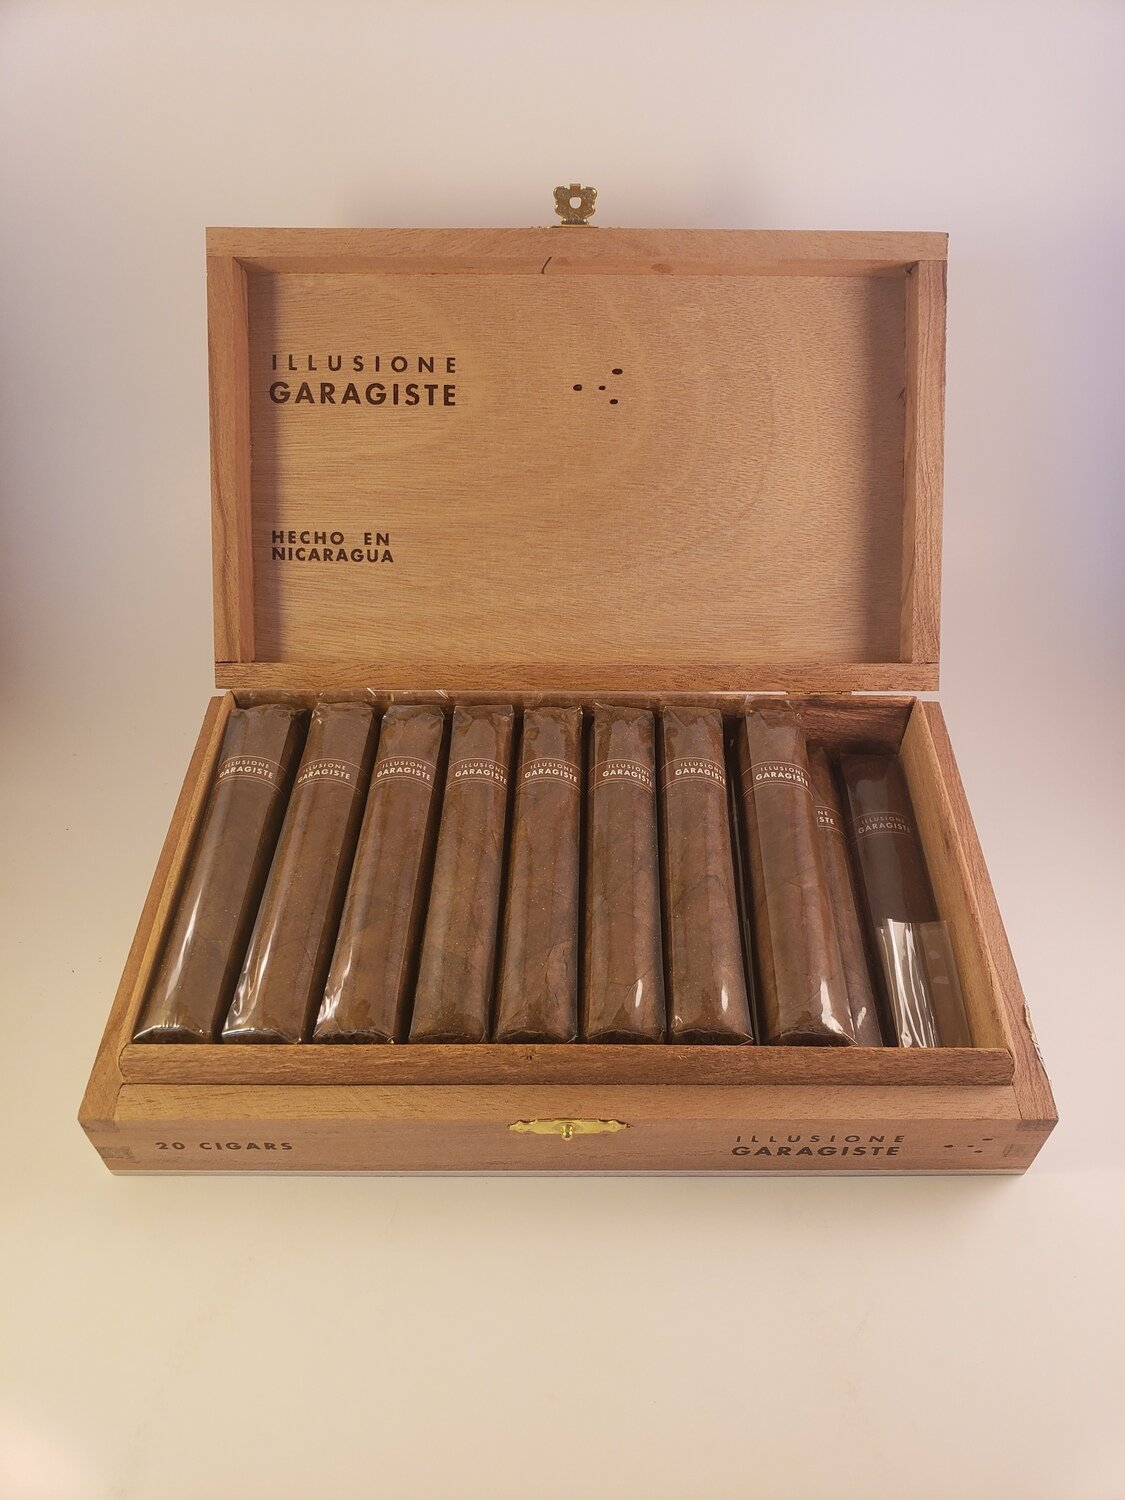 Illusione Garagiste Toro 6 x 52 Single Cigar